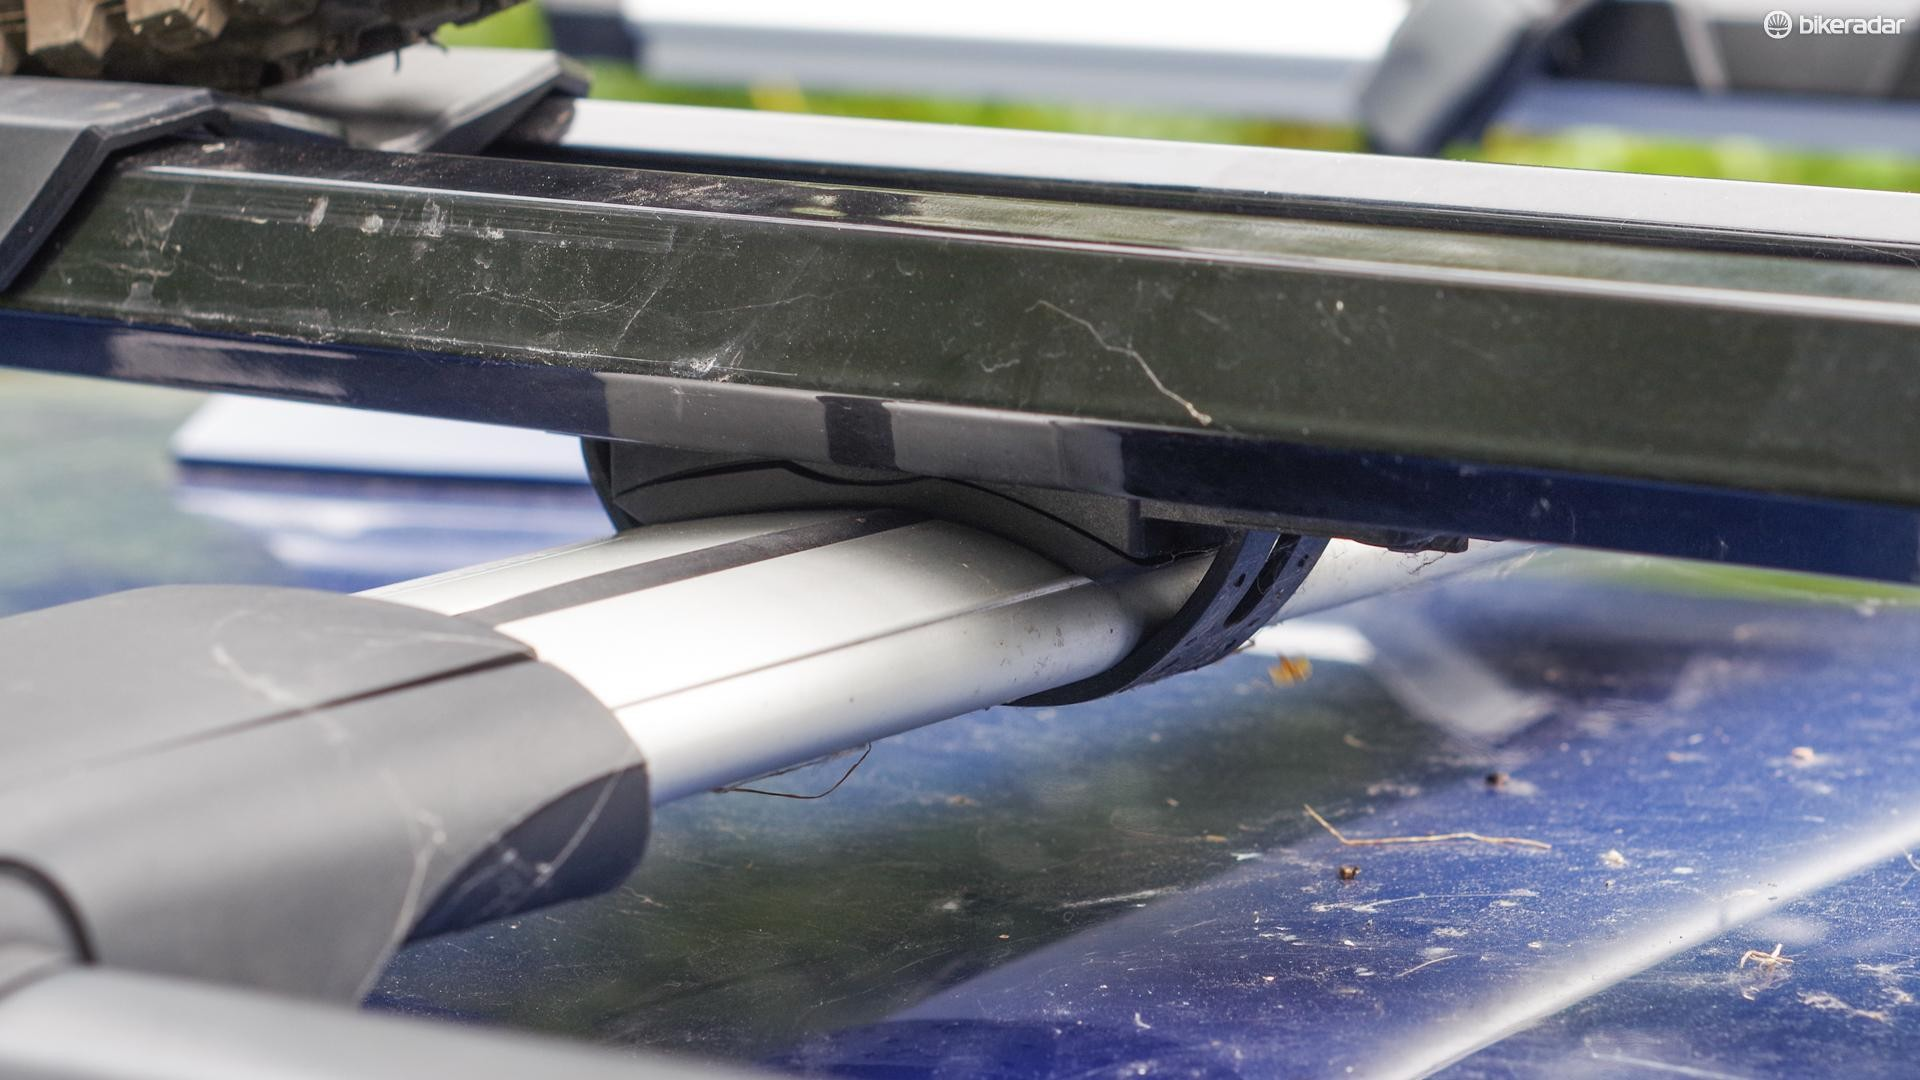 The strap attachments work with any roof bars